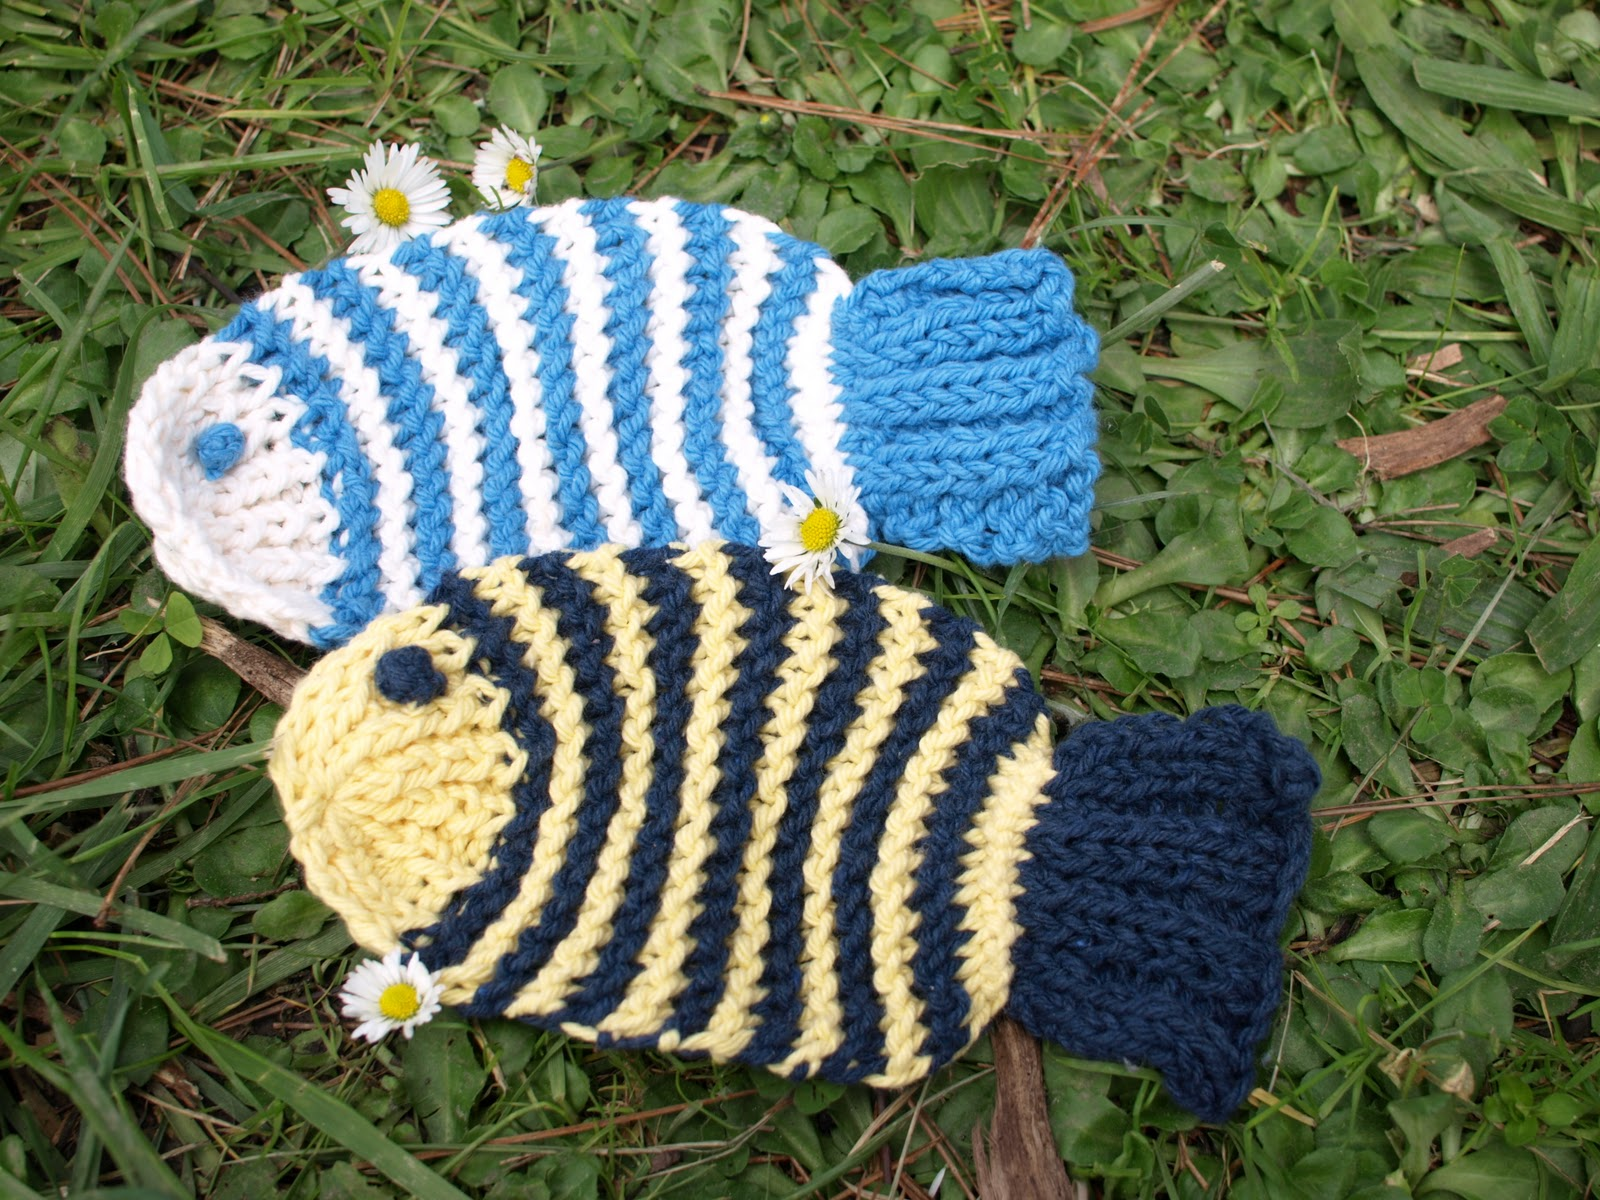 Knits, Reads and Reviews: Knit Fish Tawashi